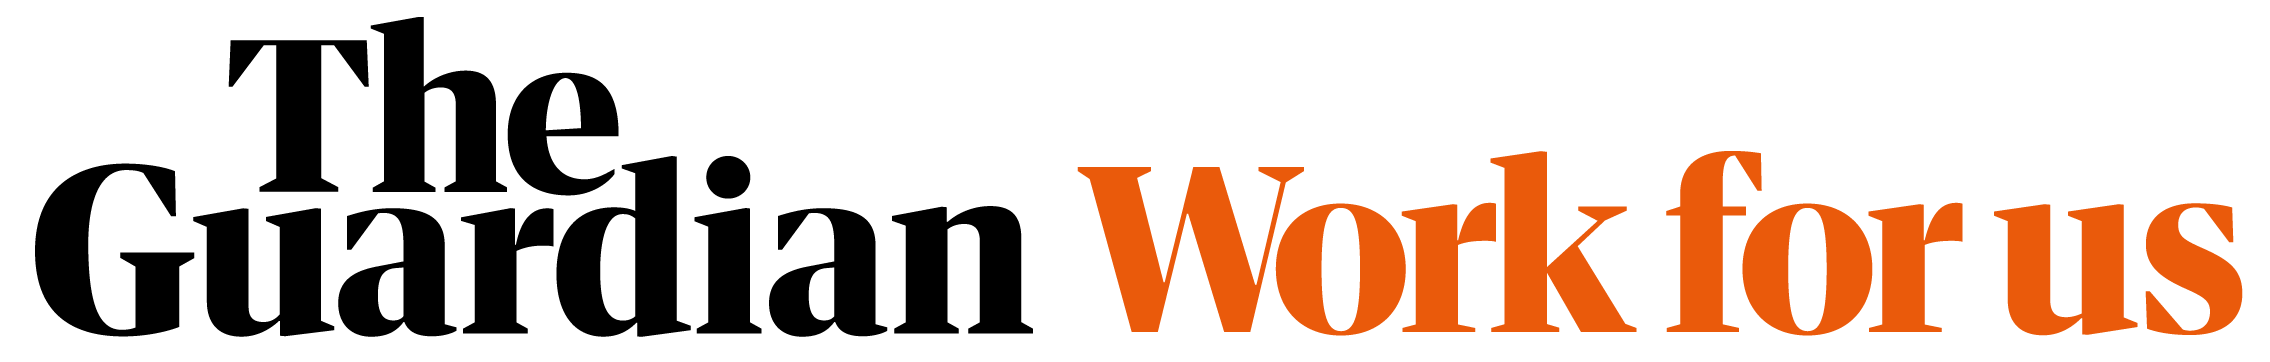 The Guardian Work For Us Logo